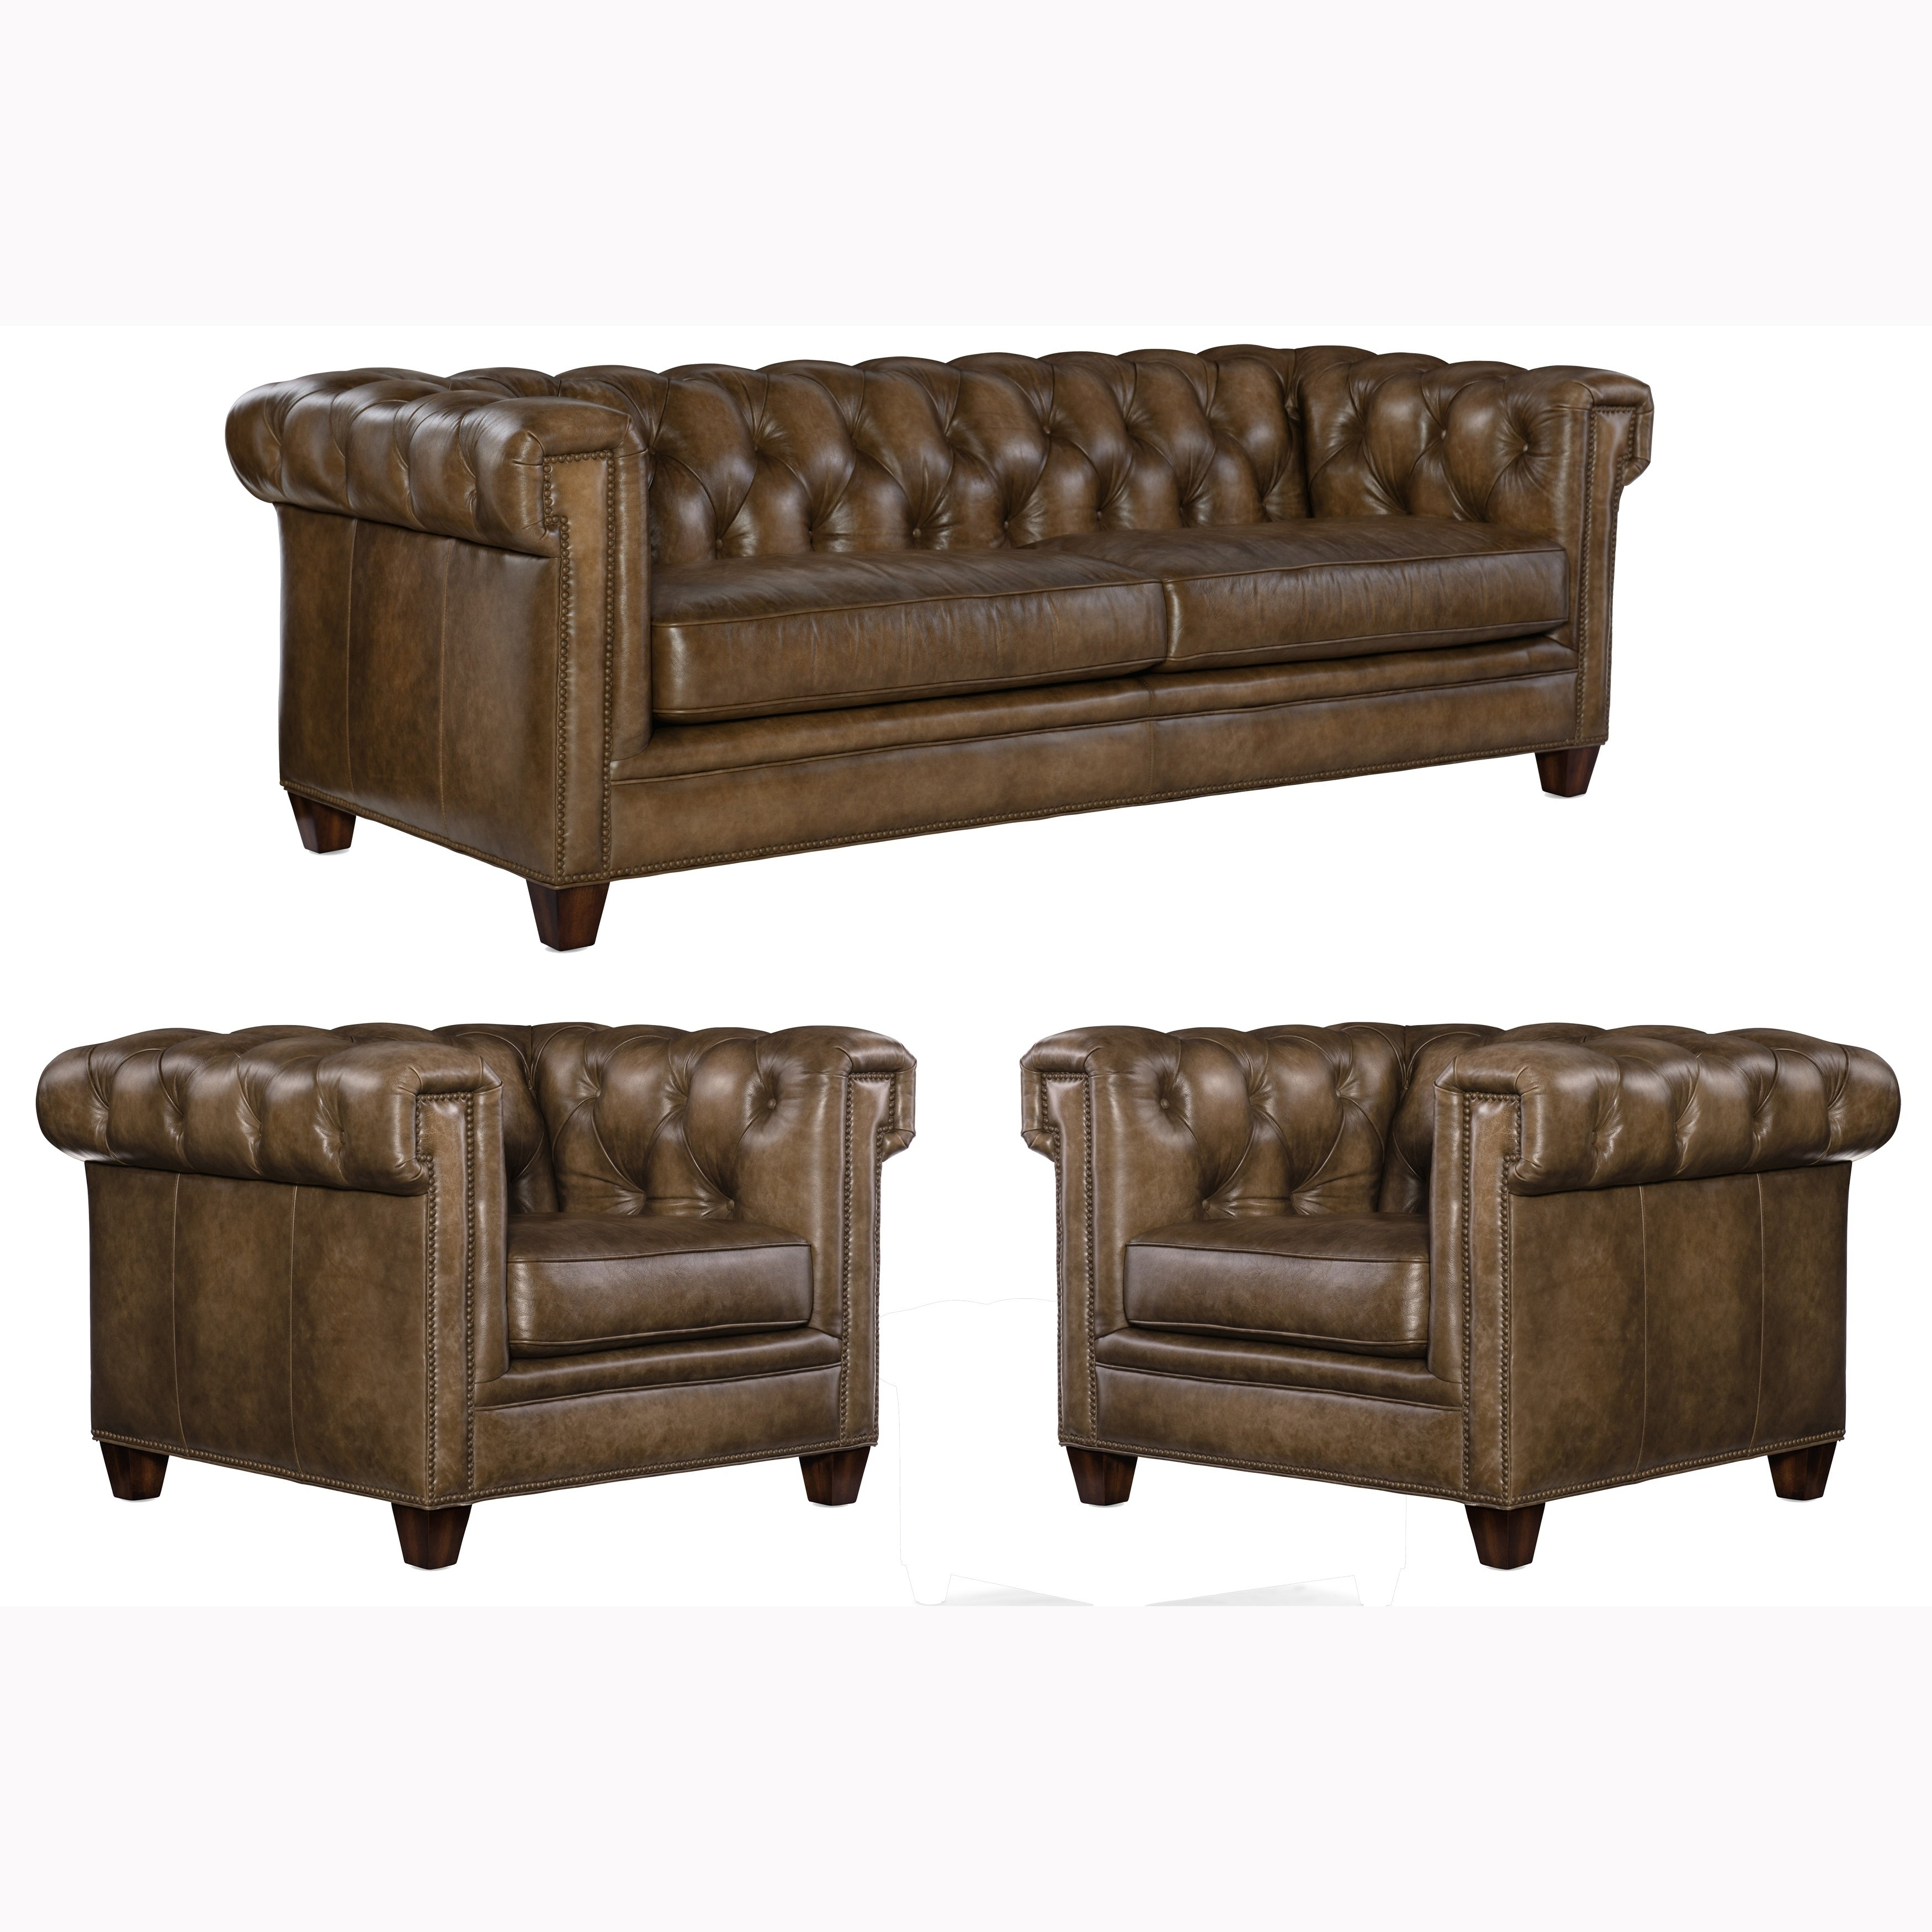 - Shop Lesa Tufted Brown Top Grain Leather Chesterfield Sofa And Two